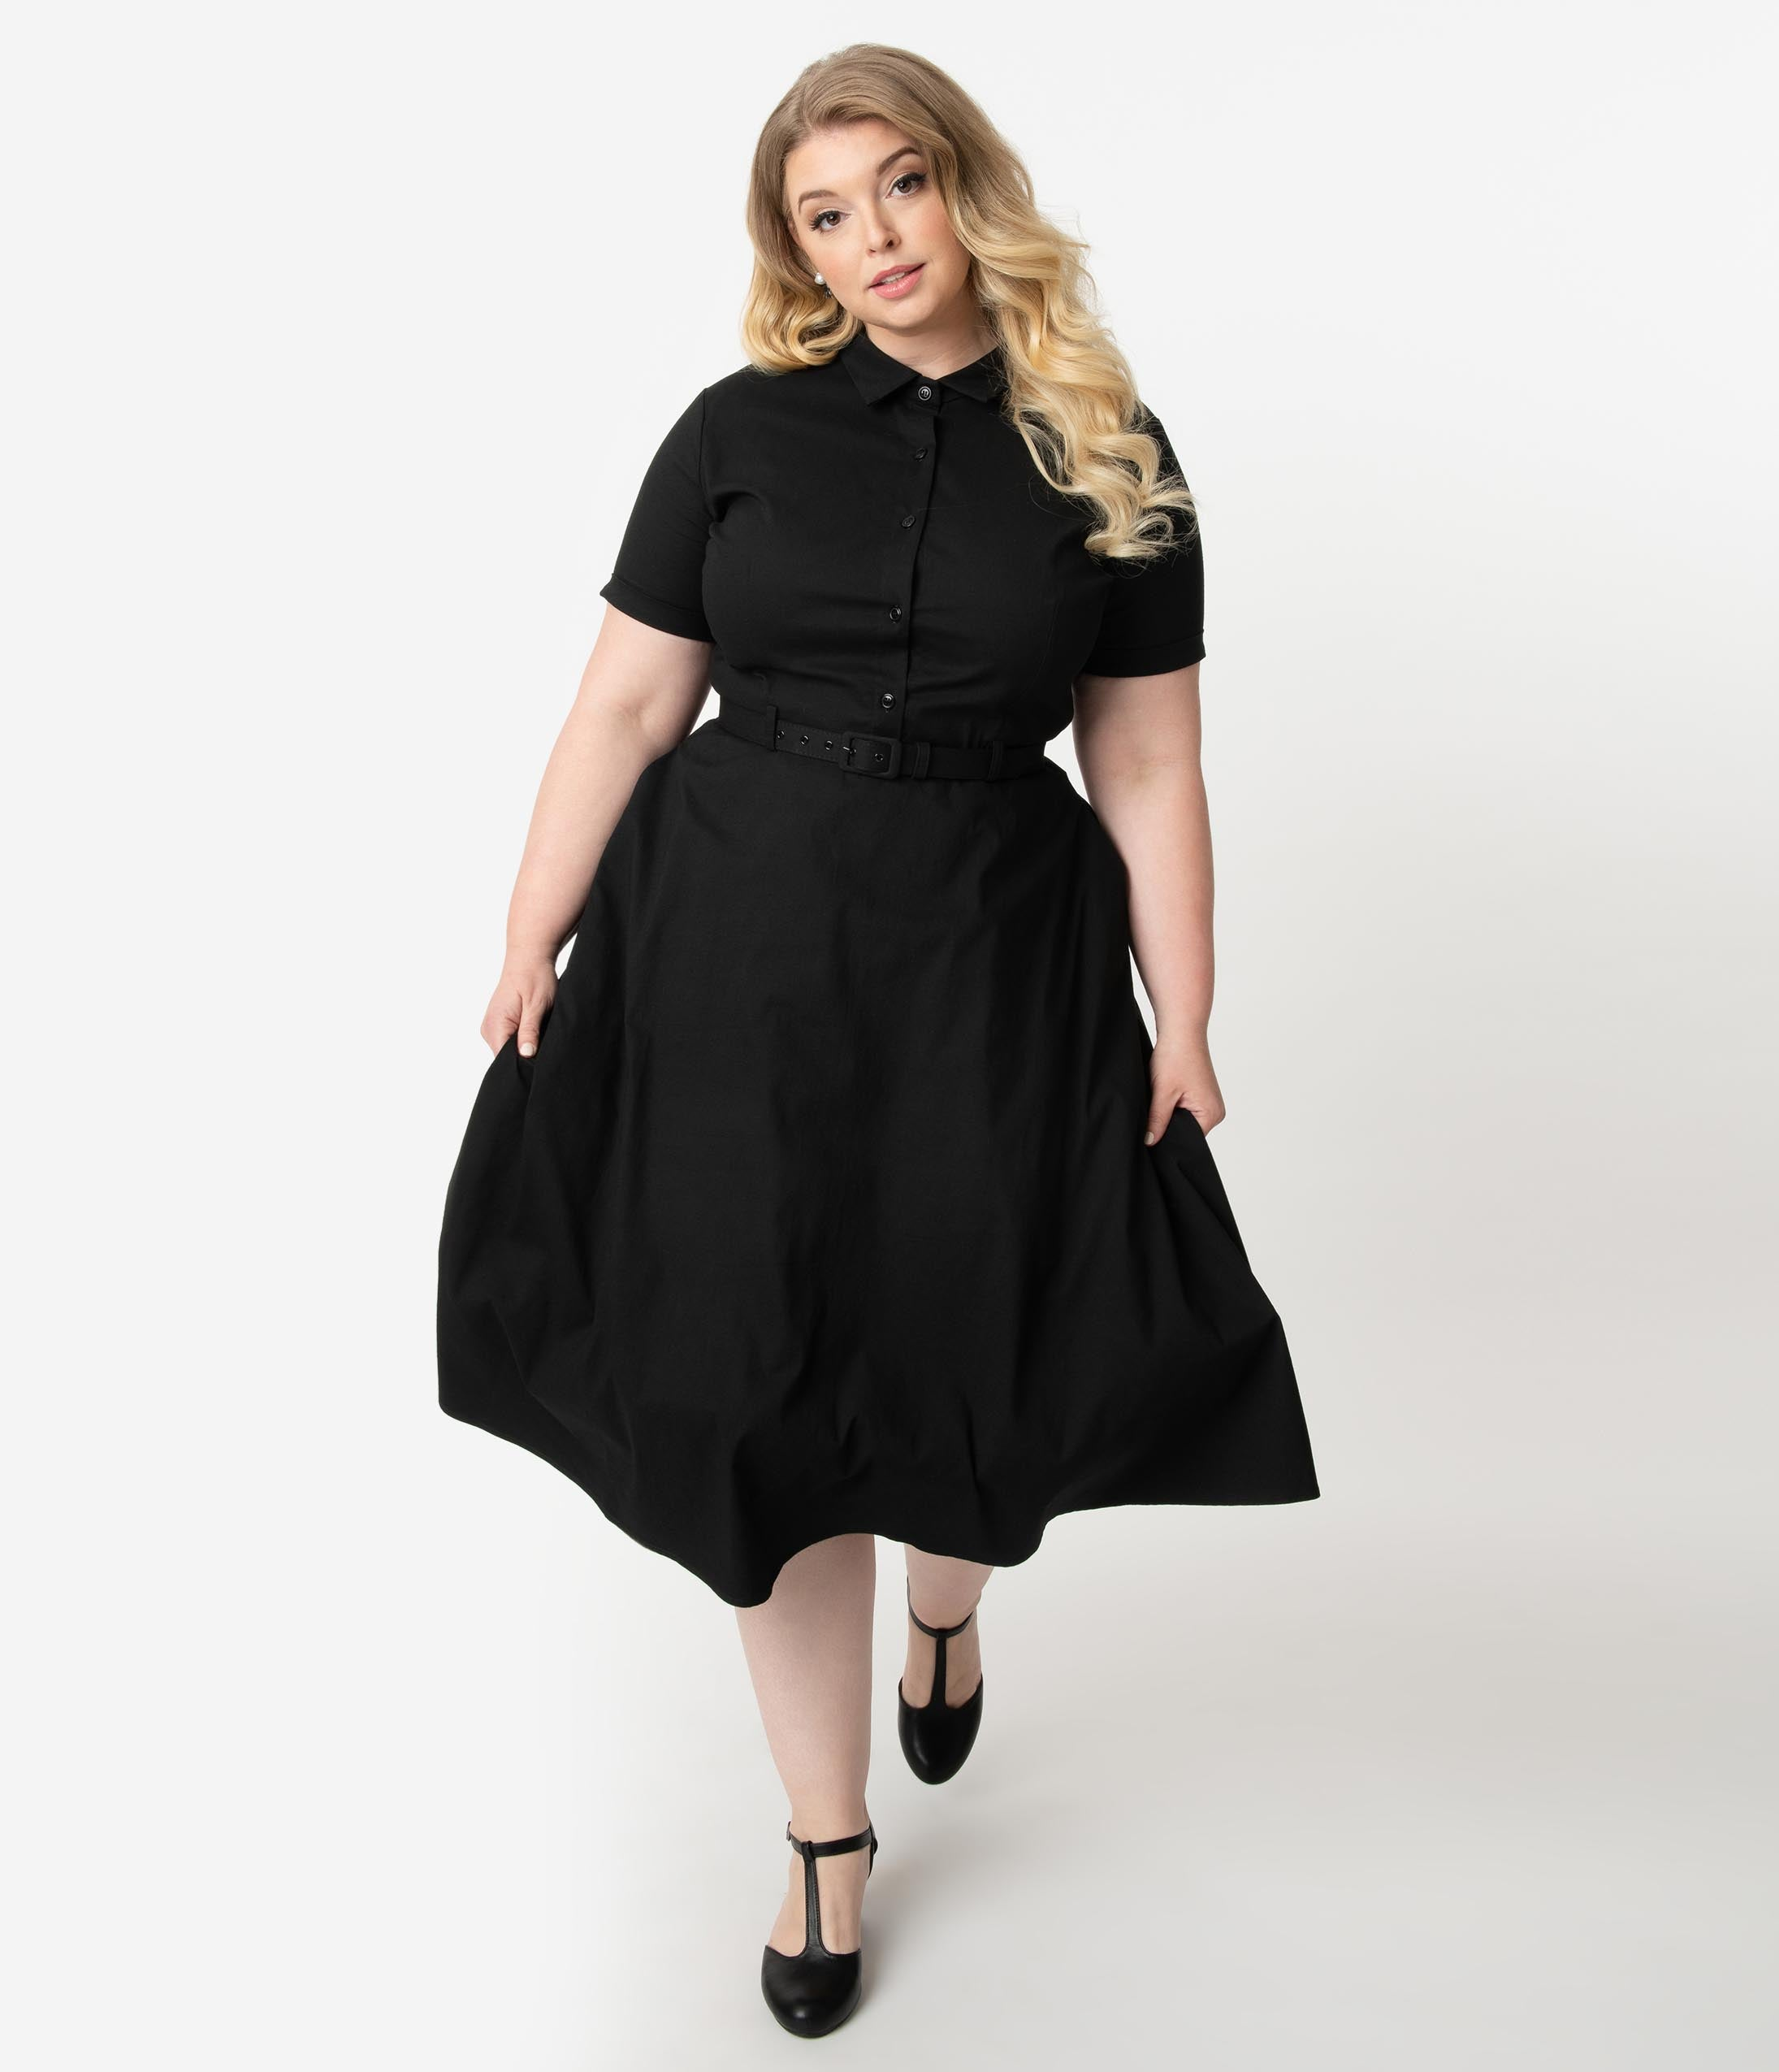 Pin Up Dresses | Pinup Clothing & Fashion Collectif Plus Size Black Stretch Off The Shoulder Sasha Fishtail Wiggle Dress $68.00 AT vintagedancer.com